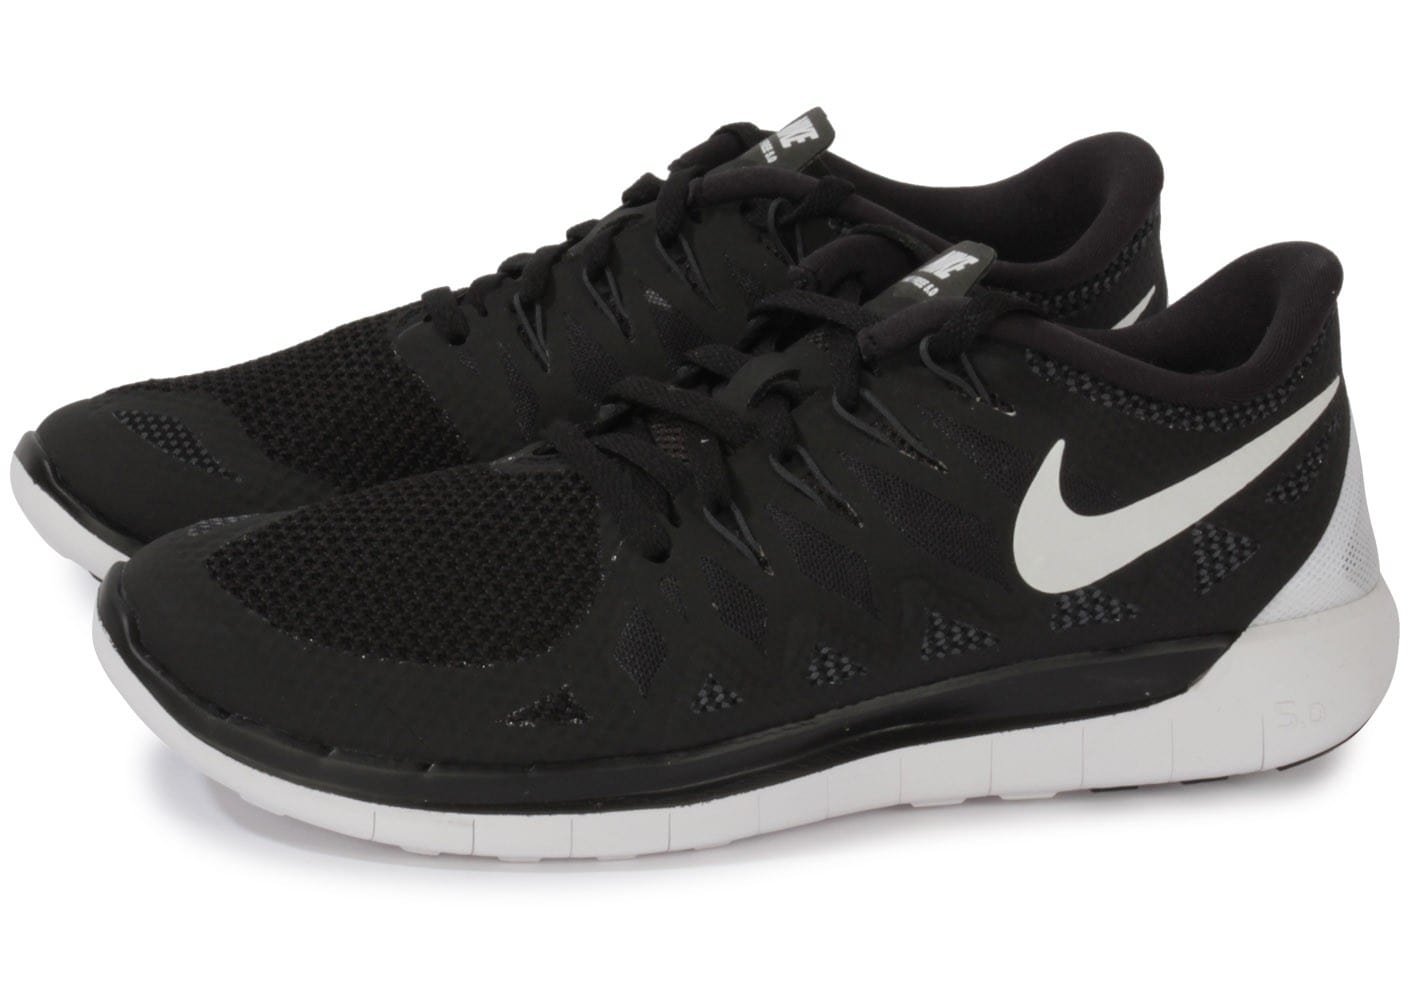 Nike Free 5.0 Noire Chaussures Baskets homme Chausport